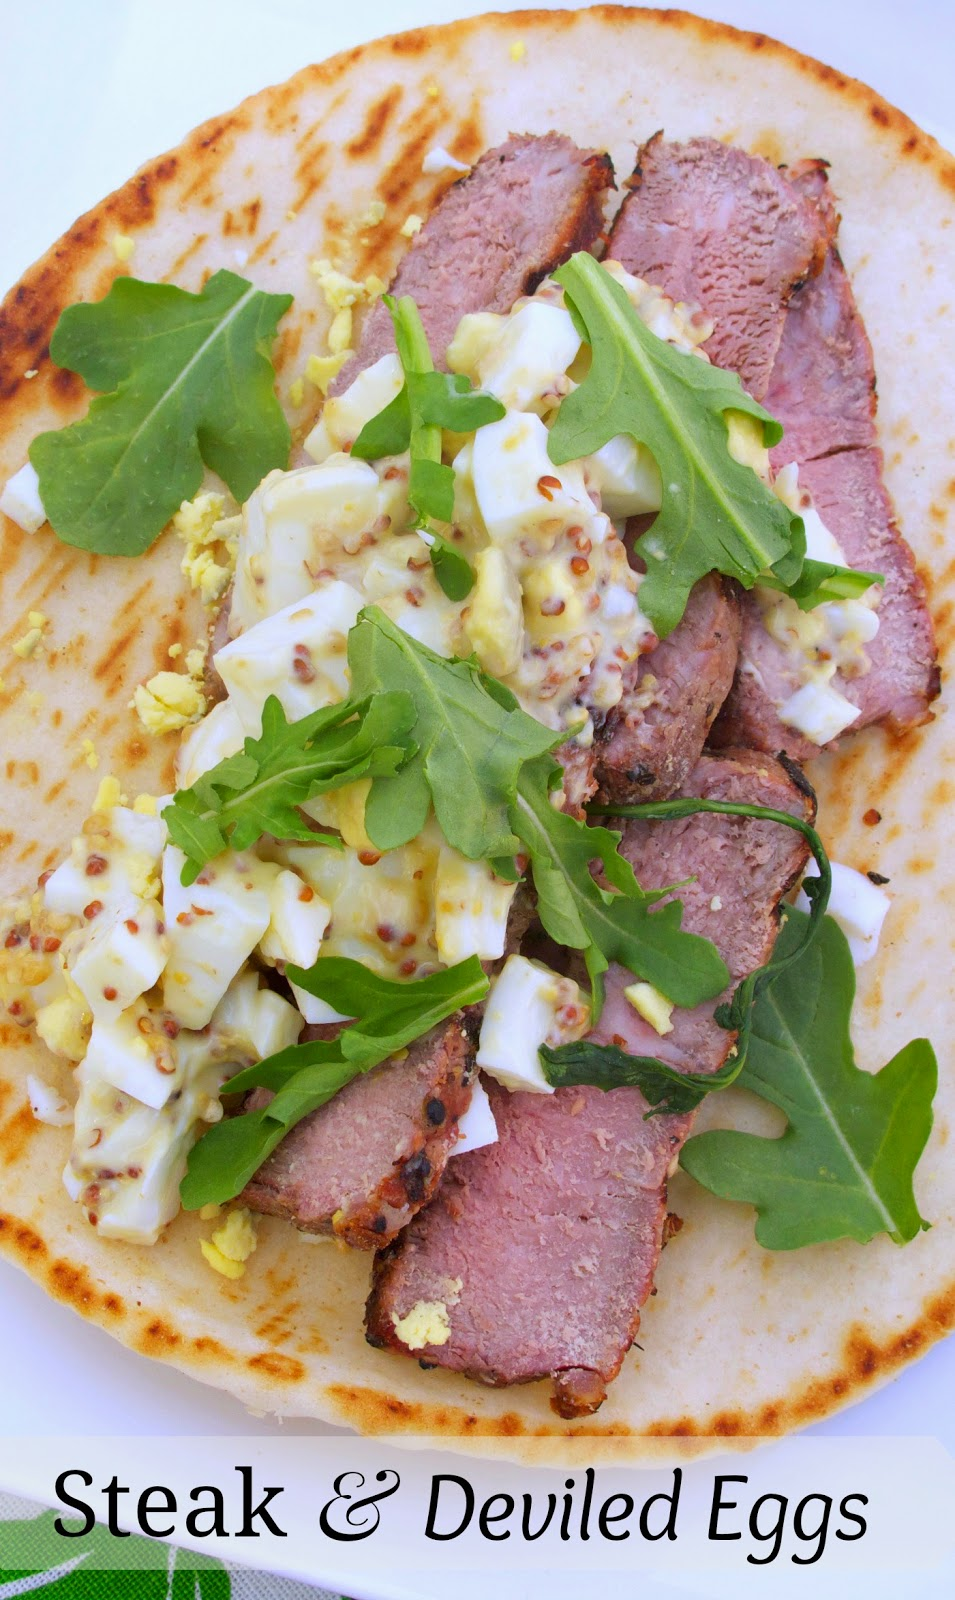 Grilled Steak and Deviled Egg Pita Sandwiches